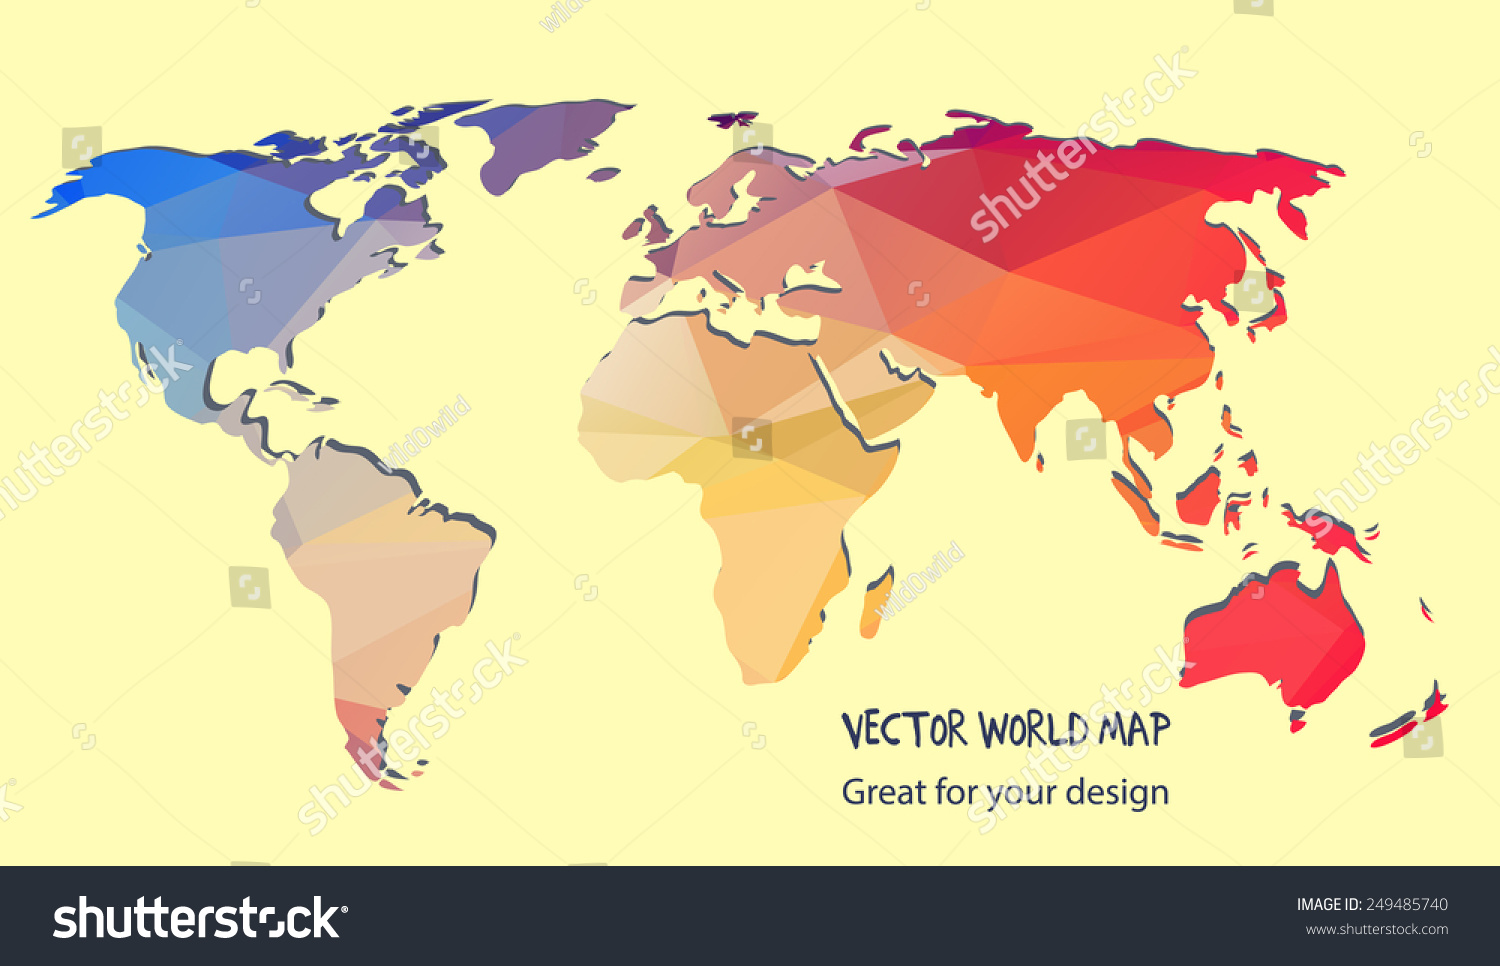 Vector world map triangle set stock vector 249485740 shutterstock vector world map triangle set gumiabroncs Gallery